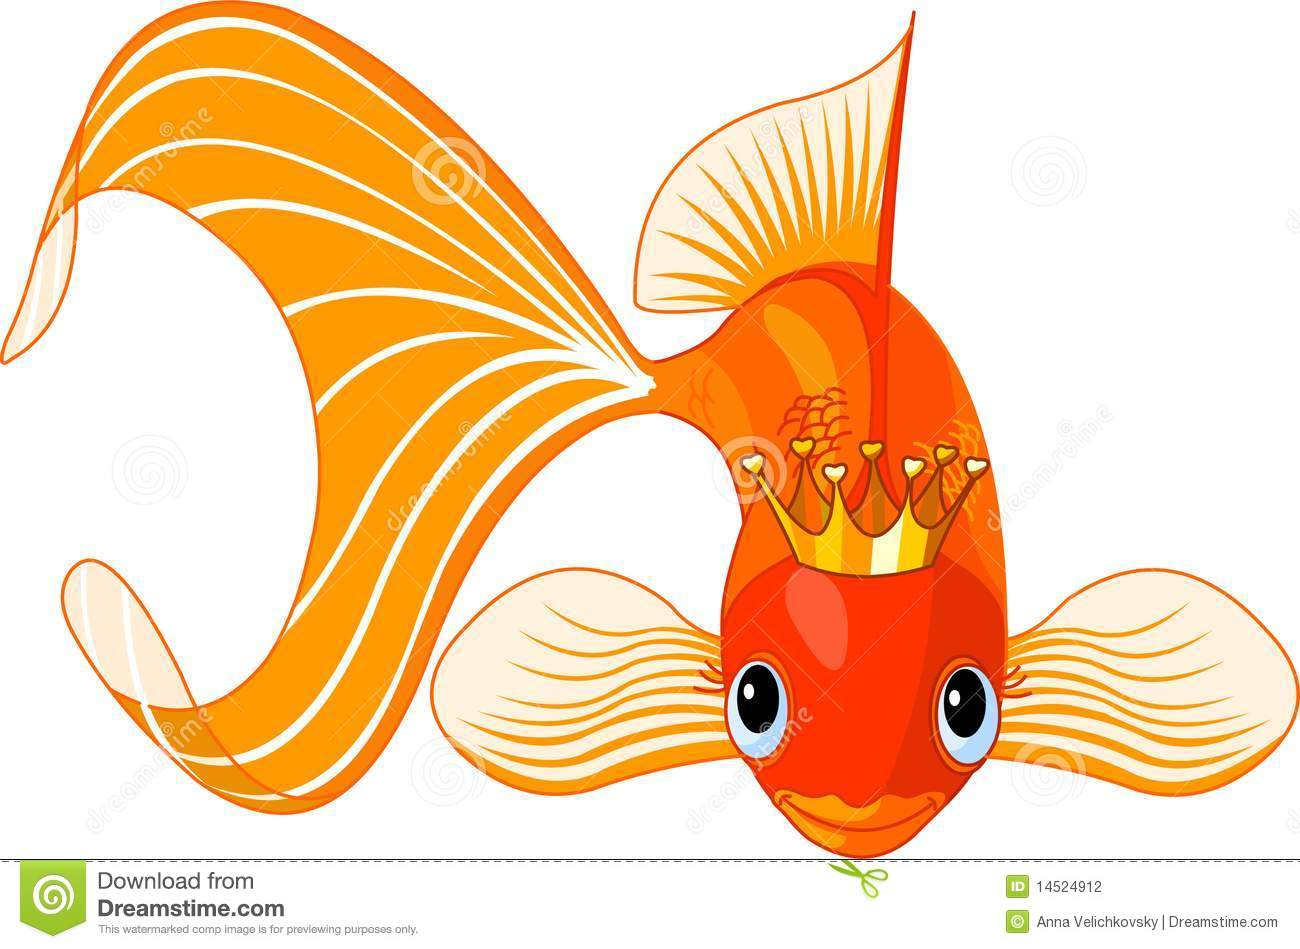 Cartoon goldfish illustration royalty free stock photo image - Royalty Free Stock Photo Cartoon Goldfish Queen Stock Photography